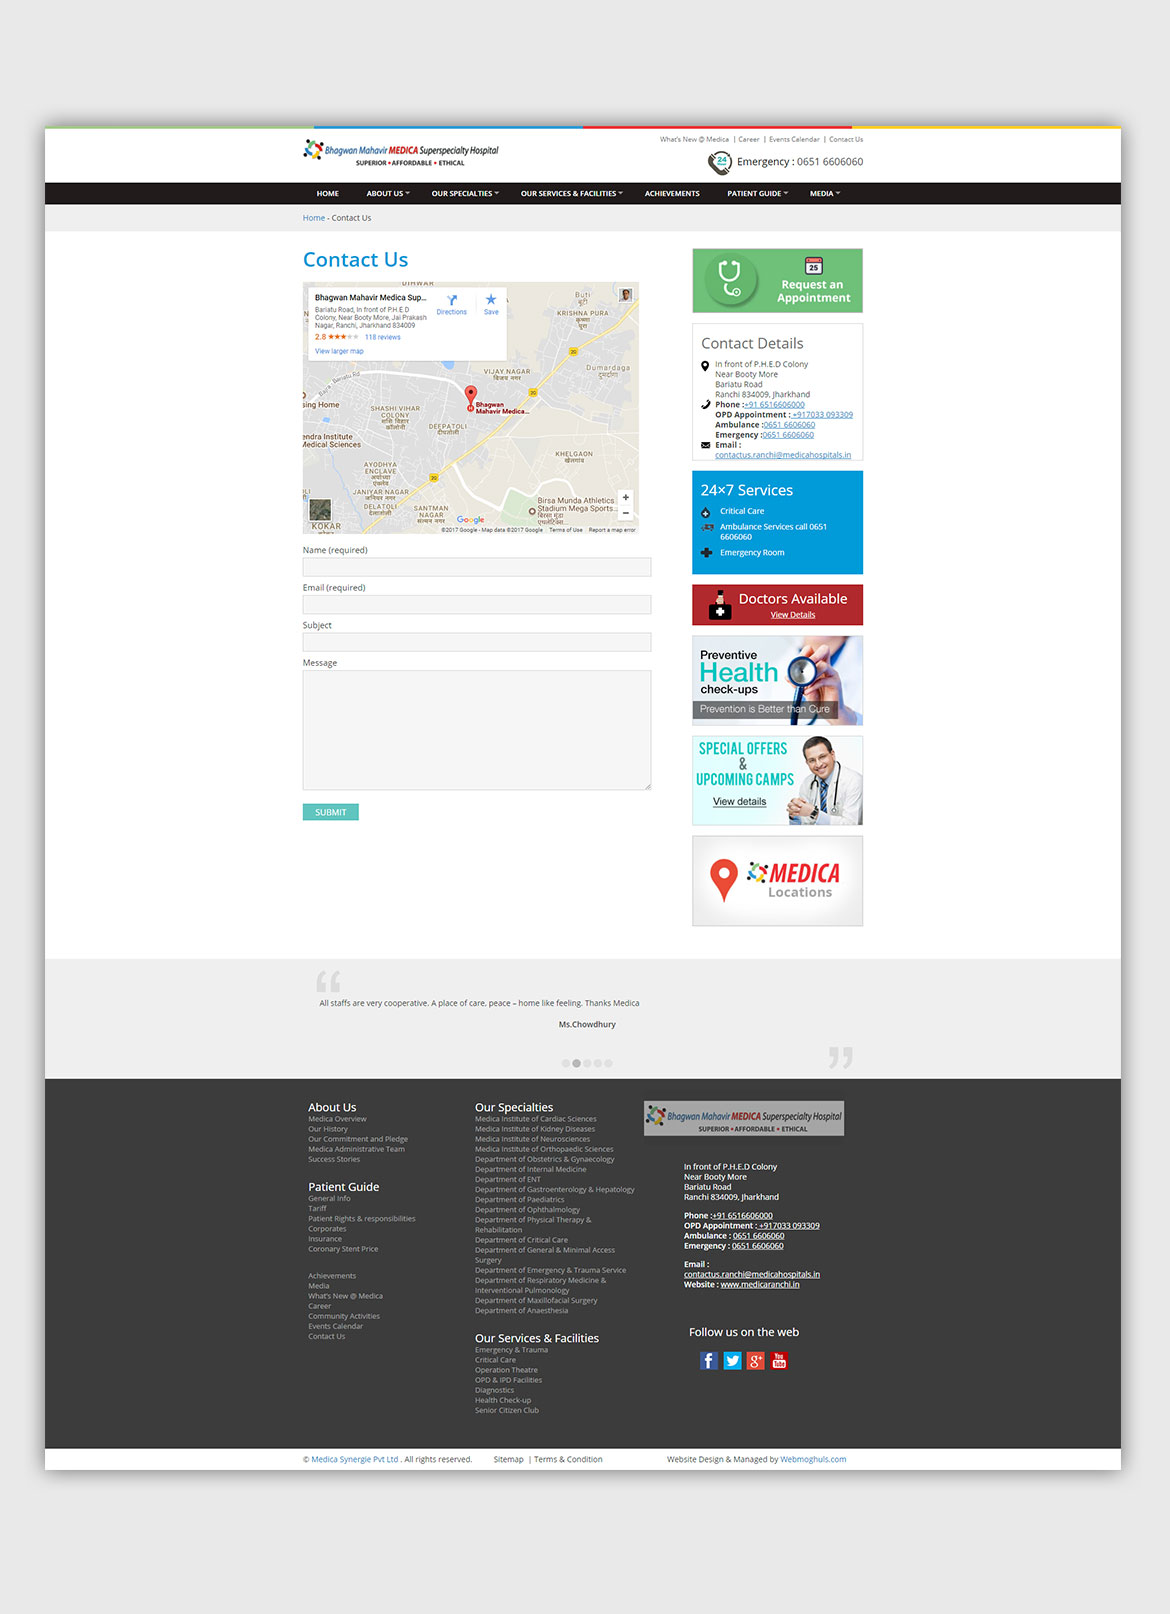 Responsive-Website-design-Development-hospital-contactUs